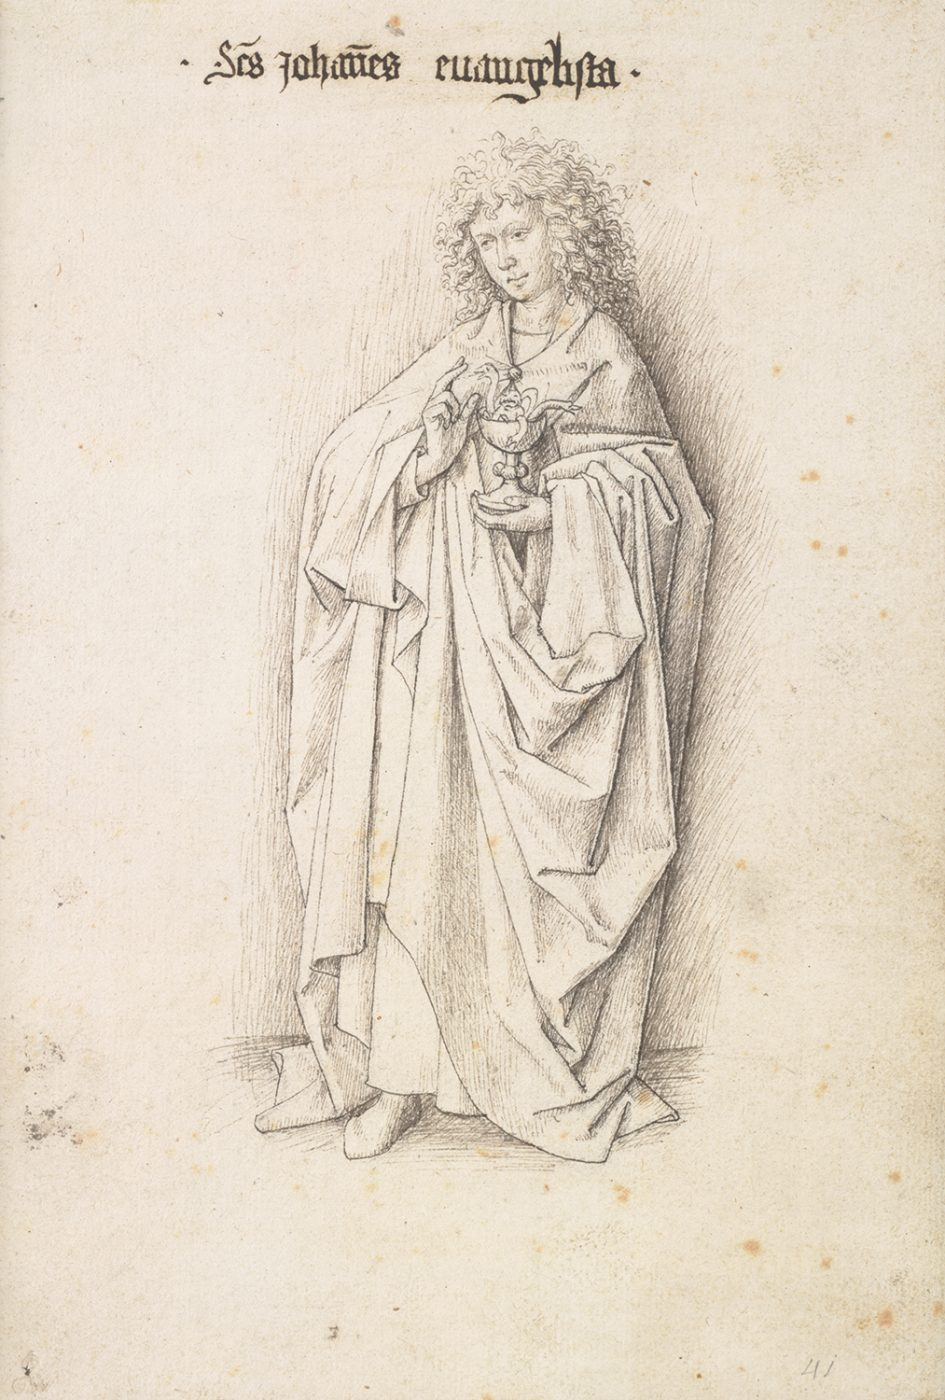 Studio of Jan van Eyck, St. John the Evangelist, from the series The Twelve Apostles, c. 1440, Albertina, Vienna